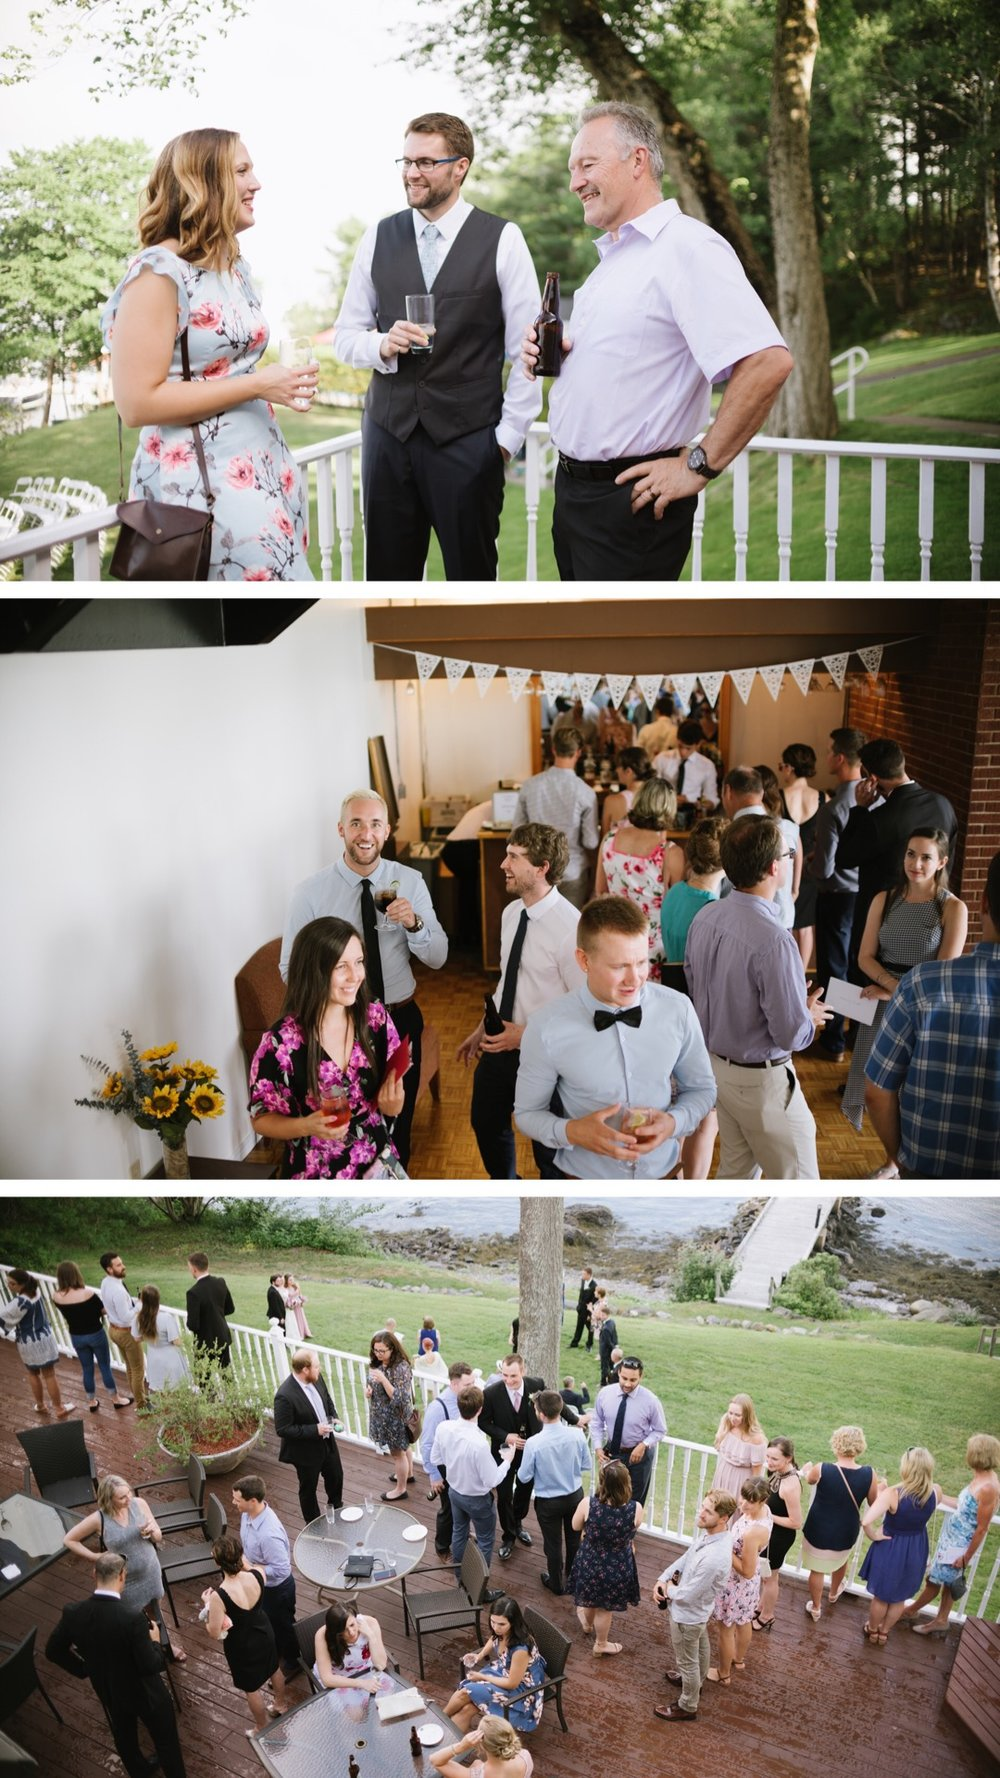 Martina & Scott Halifax Wedding Photographer - Sinead Dubeau Photography 22